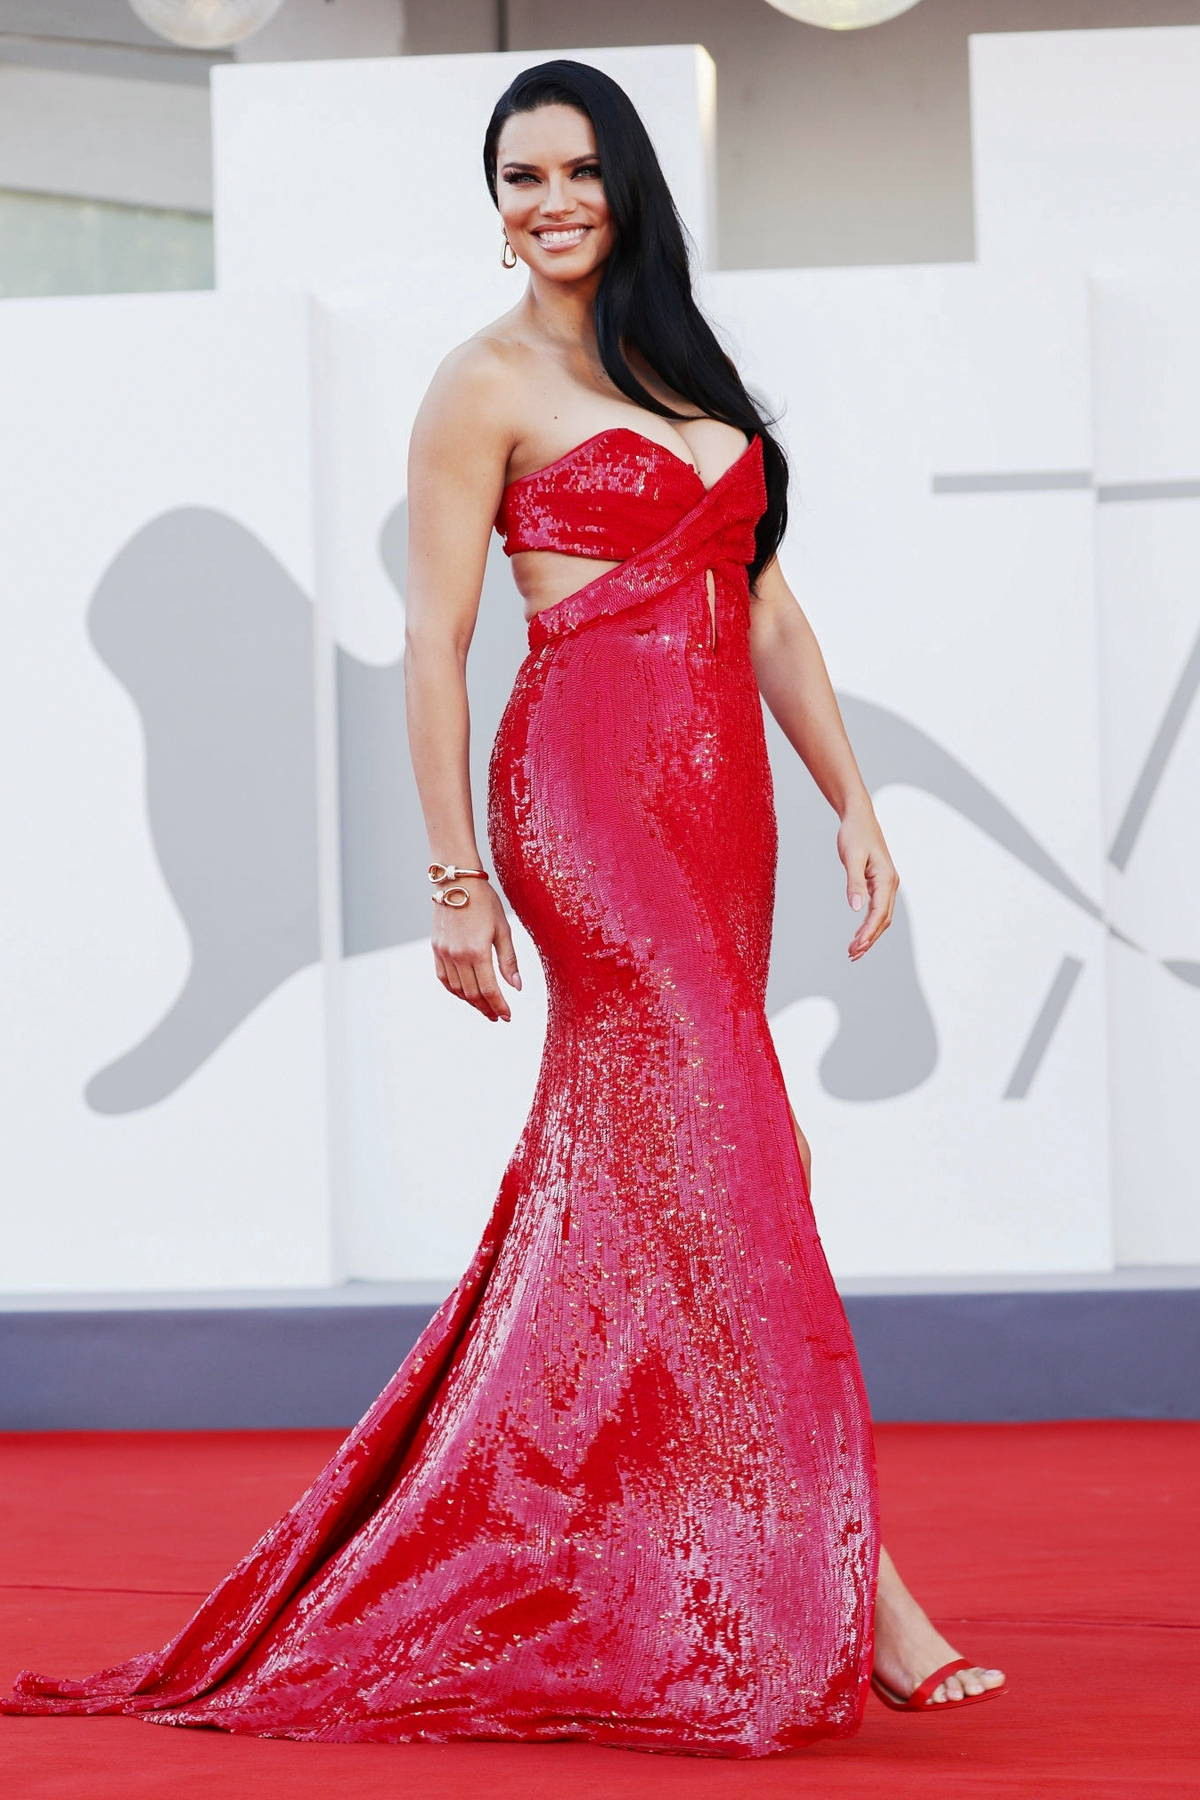 Adriana Lima attends the Premiere of 'Madres Paralelas' during the 78th Venice International Film Festival in Venice, Italy